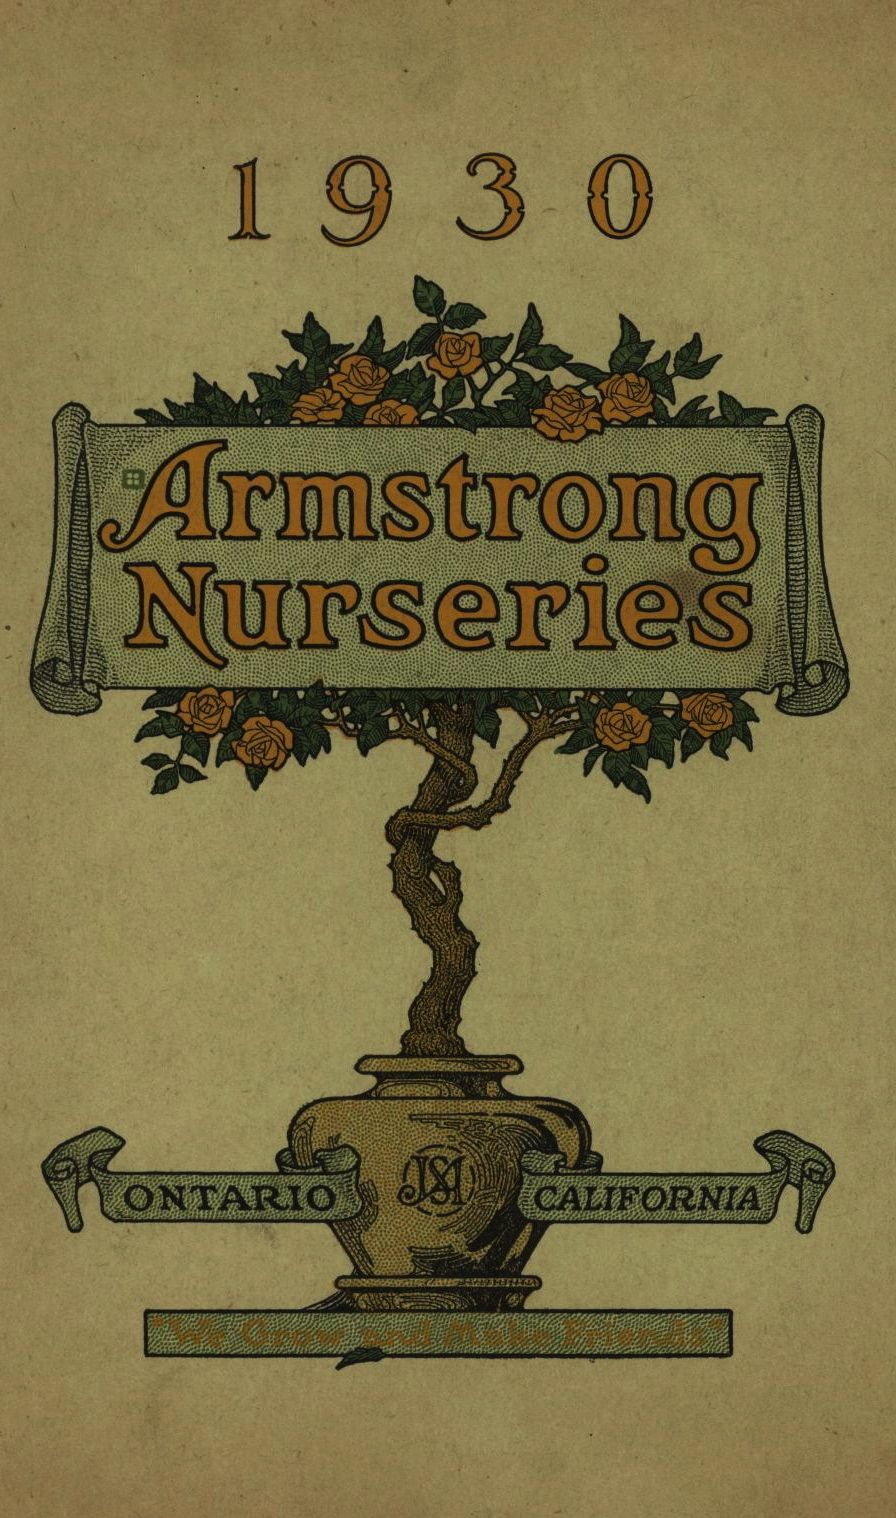 Armstrong Nurseries 1930 From The Ociation For Preservation Technology Apt Building Heritage Library An Online Archive Of Period